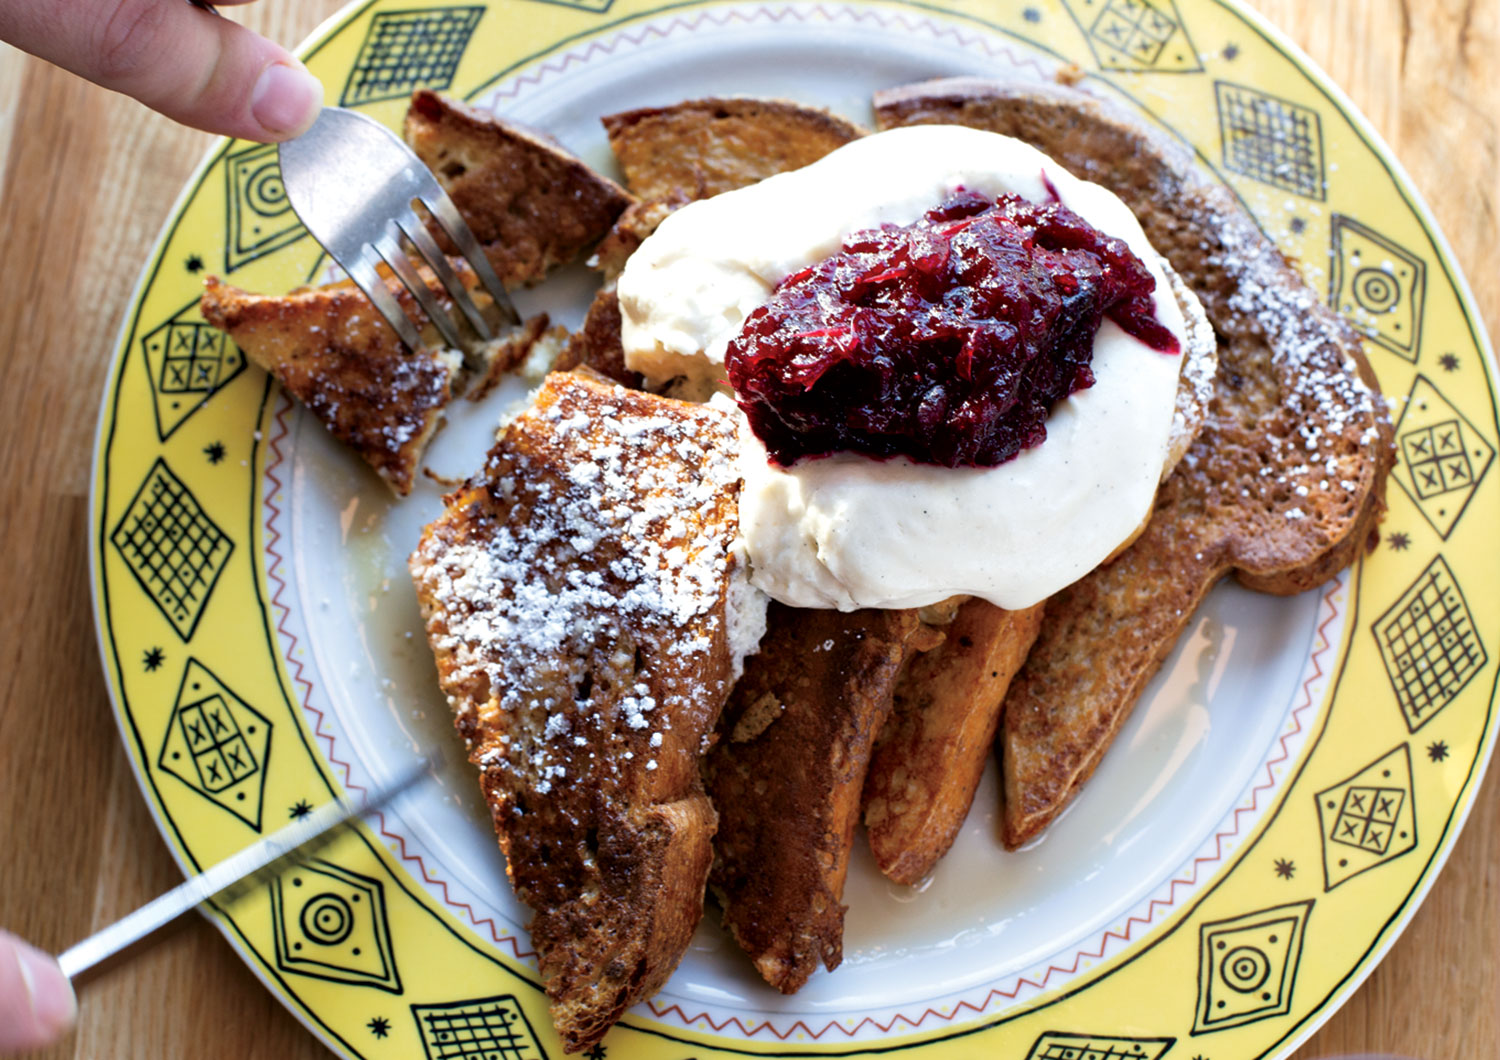 brioche French toast topped with fresh whipped cream and raspberry compote; photo by Debby Wolvos